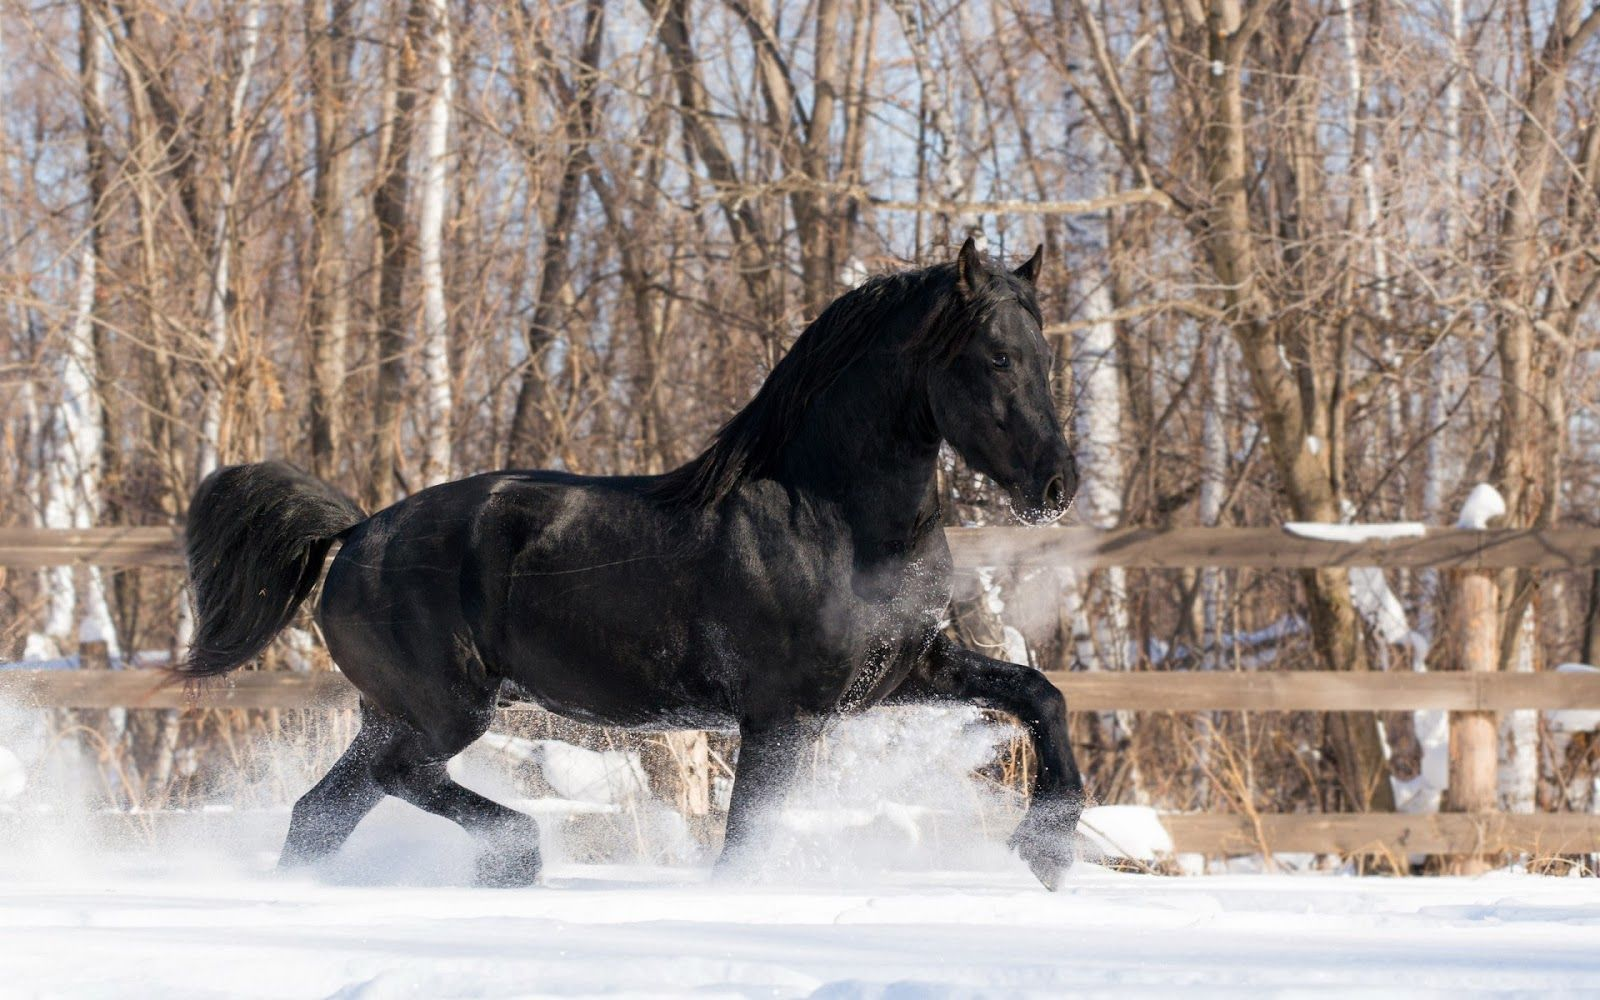 Simple Wallpaper Horse Winter - 23abf91f4ee1c00ded0397897c5fb955  Pictures_93628.jpg